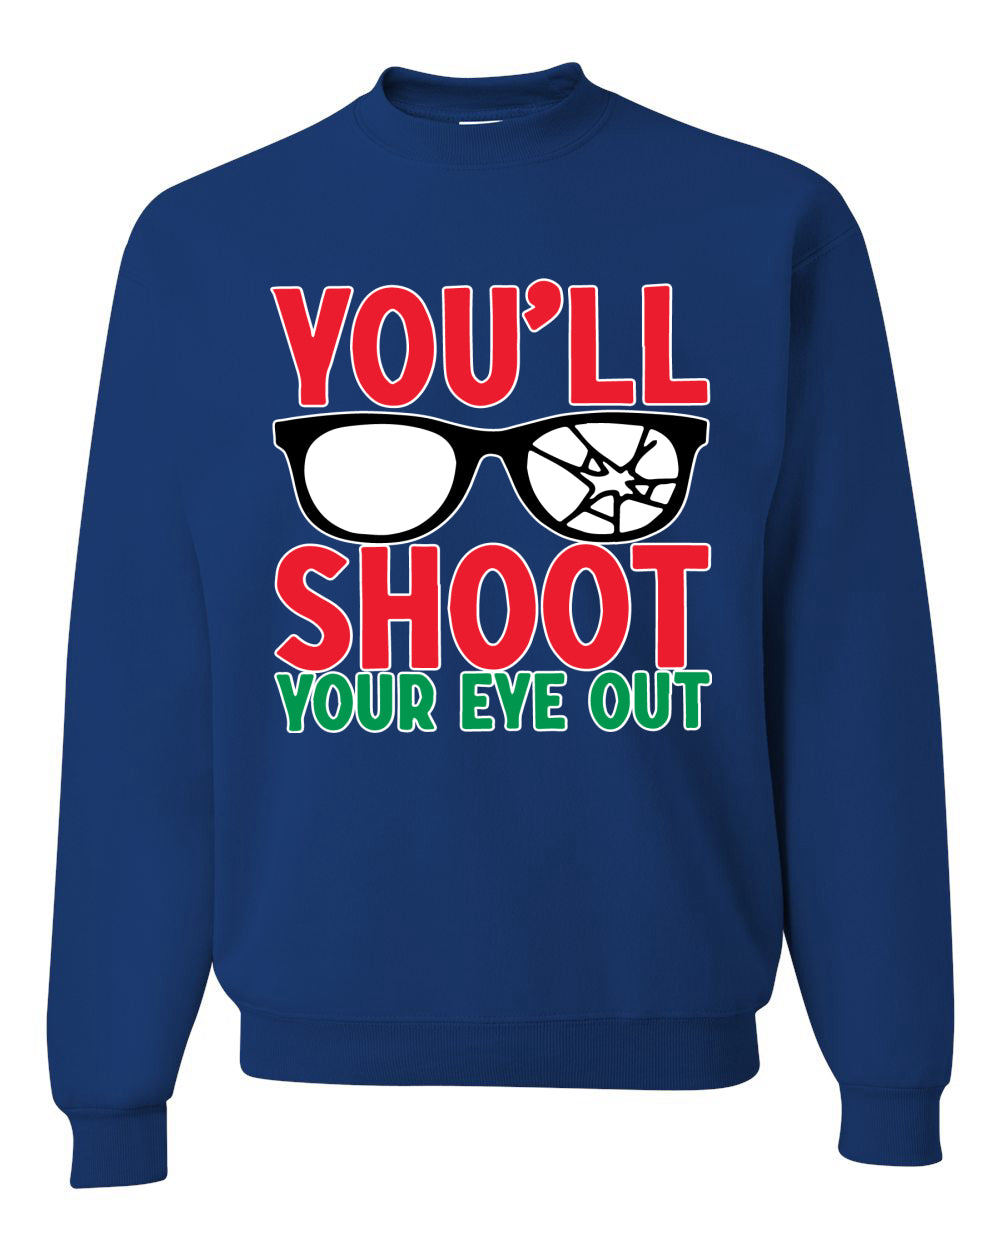 You'll Shoot Your Eye Out Movie Parody  Ugly Christmas Sweater Unisex Crewneck Graphic Sweatshirt